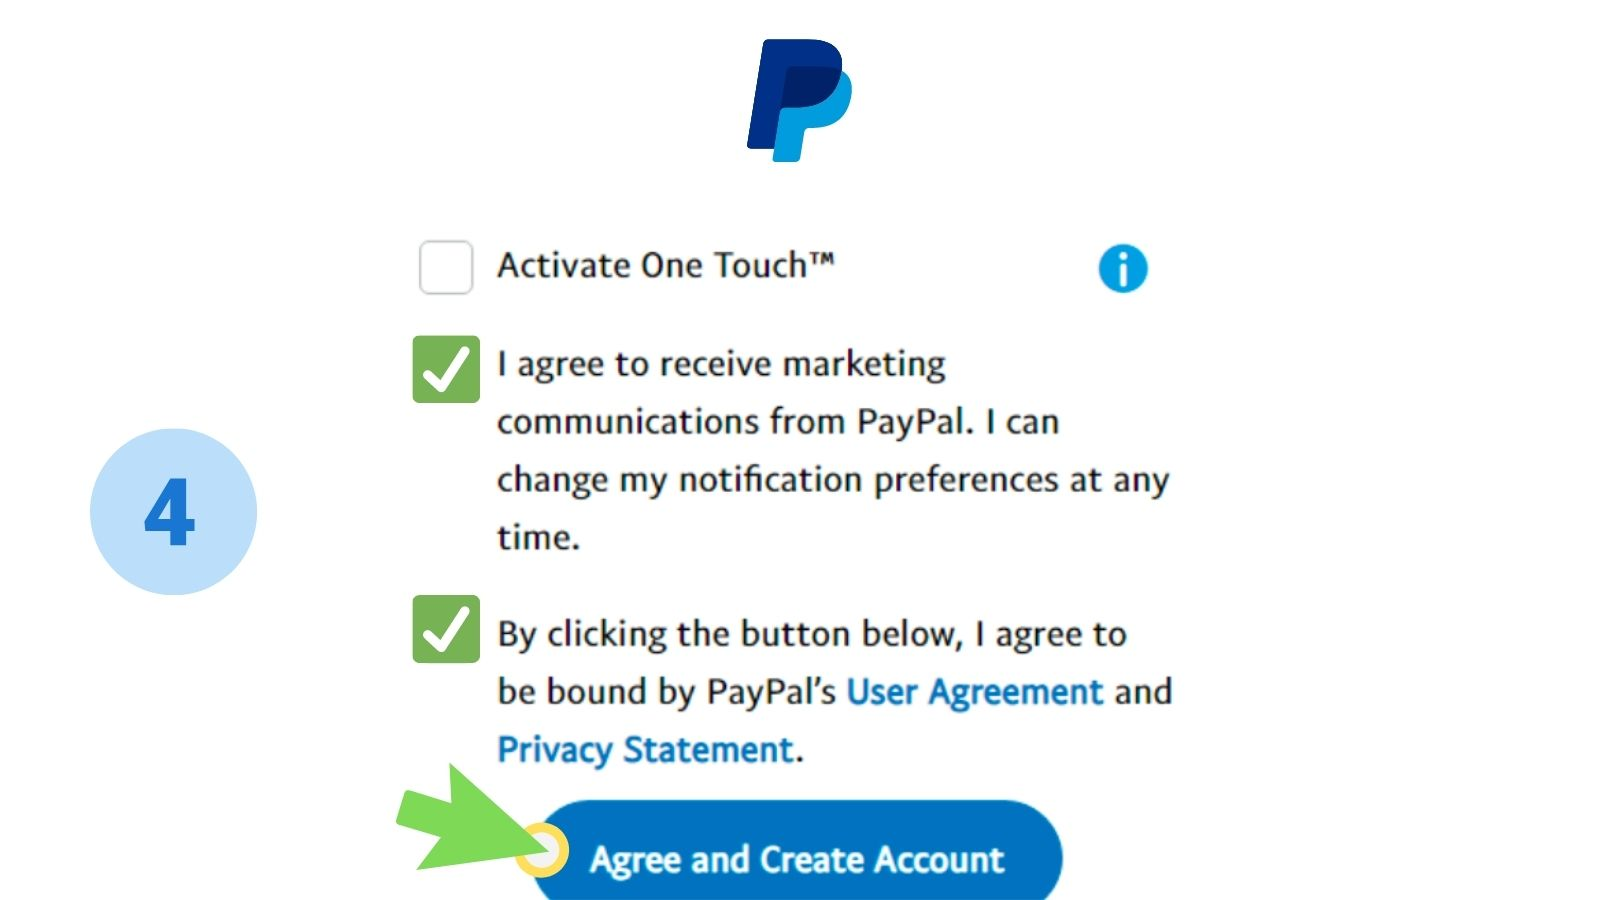 paypal step 4 activate one touch